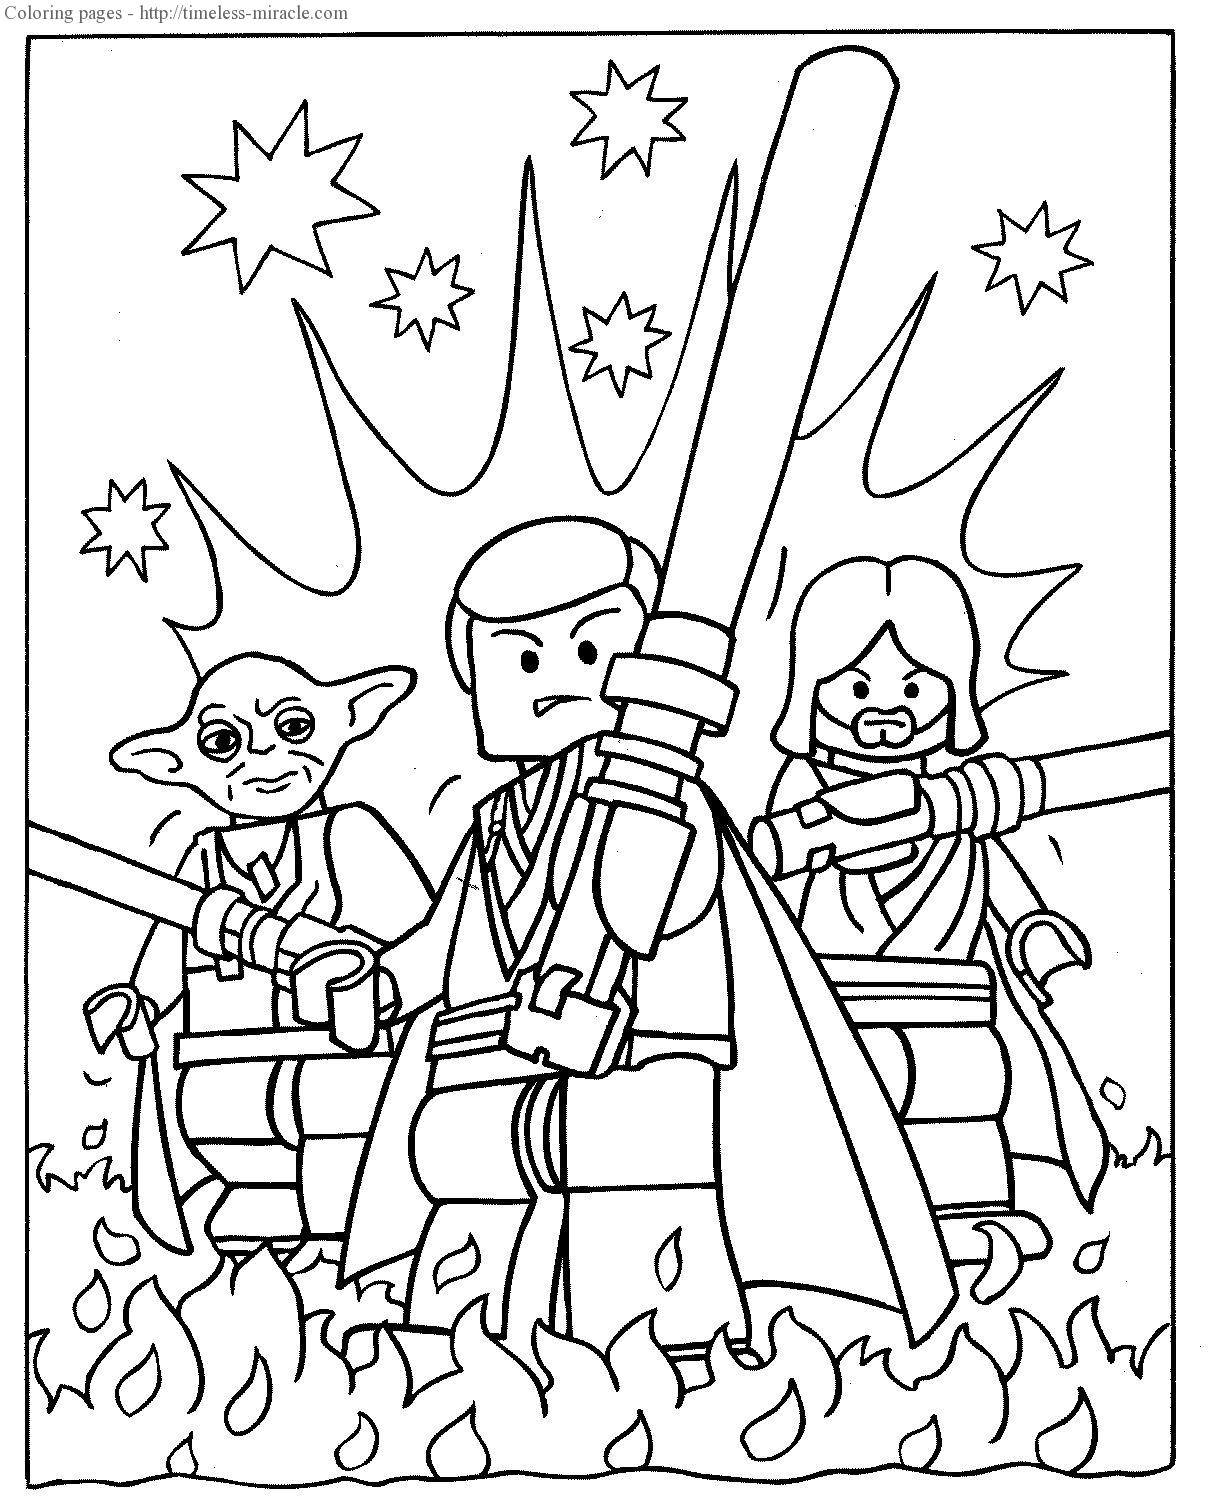 lego star wars coloring pages to print lego star wars coloring pages to download and print for free wars pages lego star coloring print to